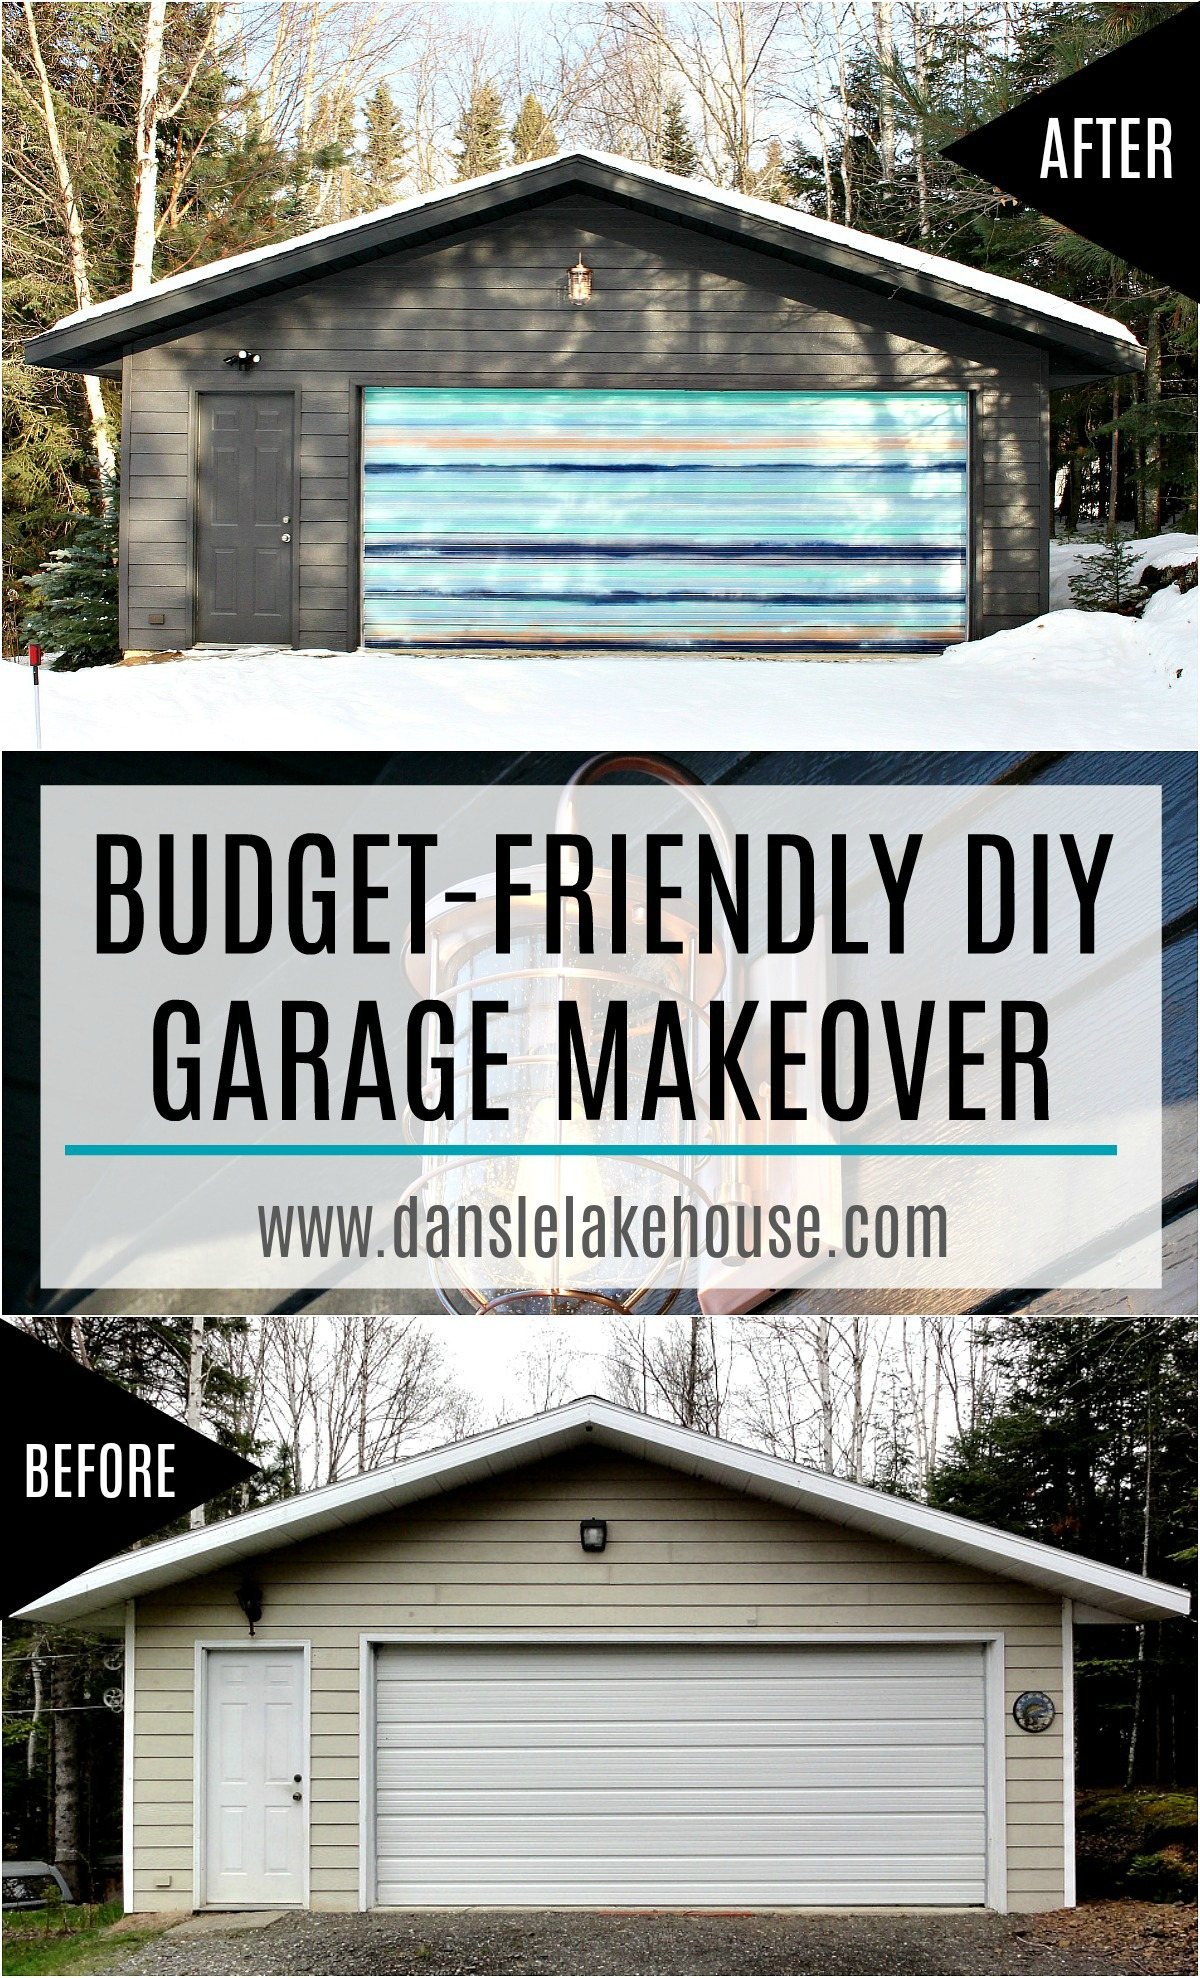 Budget-Friendly DIY Garage Makeover with Painted Soffit and Fascia, Painted Siding and Mural. Dark Grey Brown Siding and Copper Ferry Light #exteriorreno #garagemakeover #garageinspiration